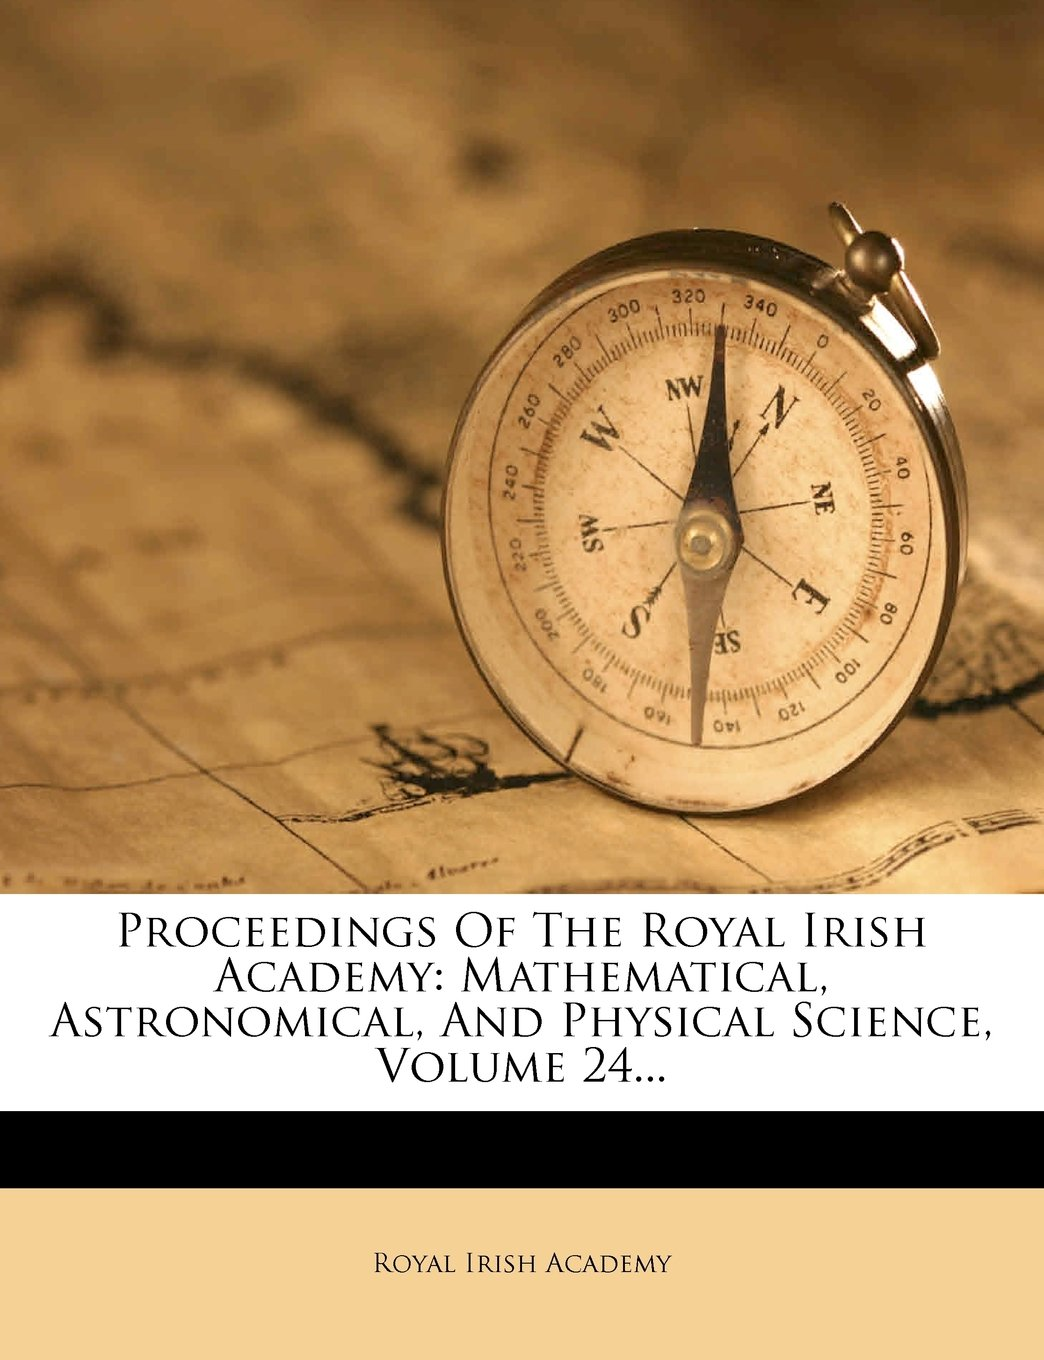 Proceedings Of The Royal Irish Academy: Mathematical, Astronomical, And Physical Science, Volume 24... ebook